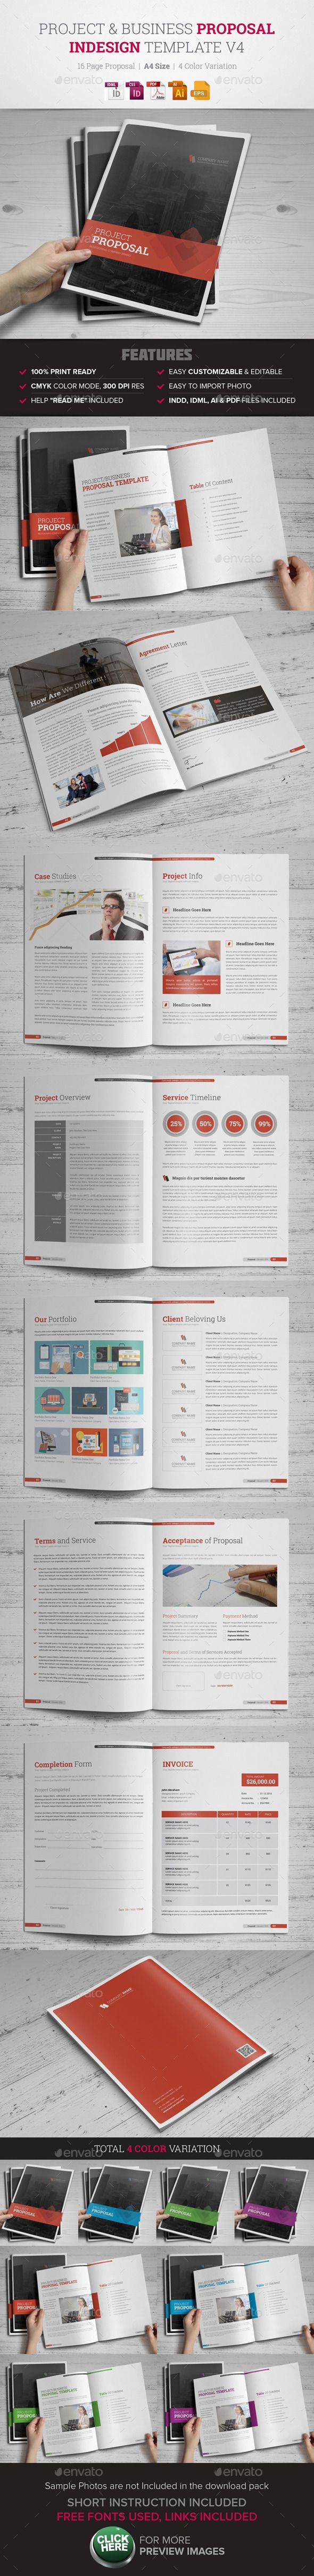 Project & Business Proposal InDesign v4 — Vector EPS #small business…